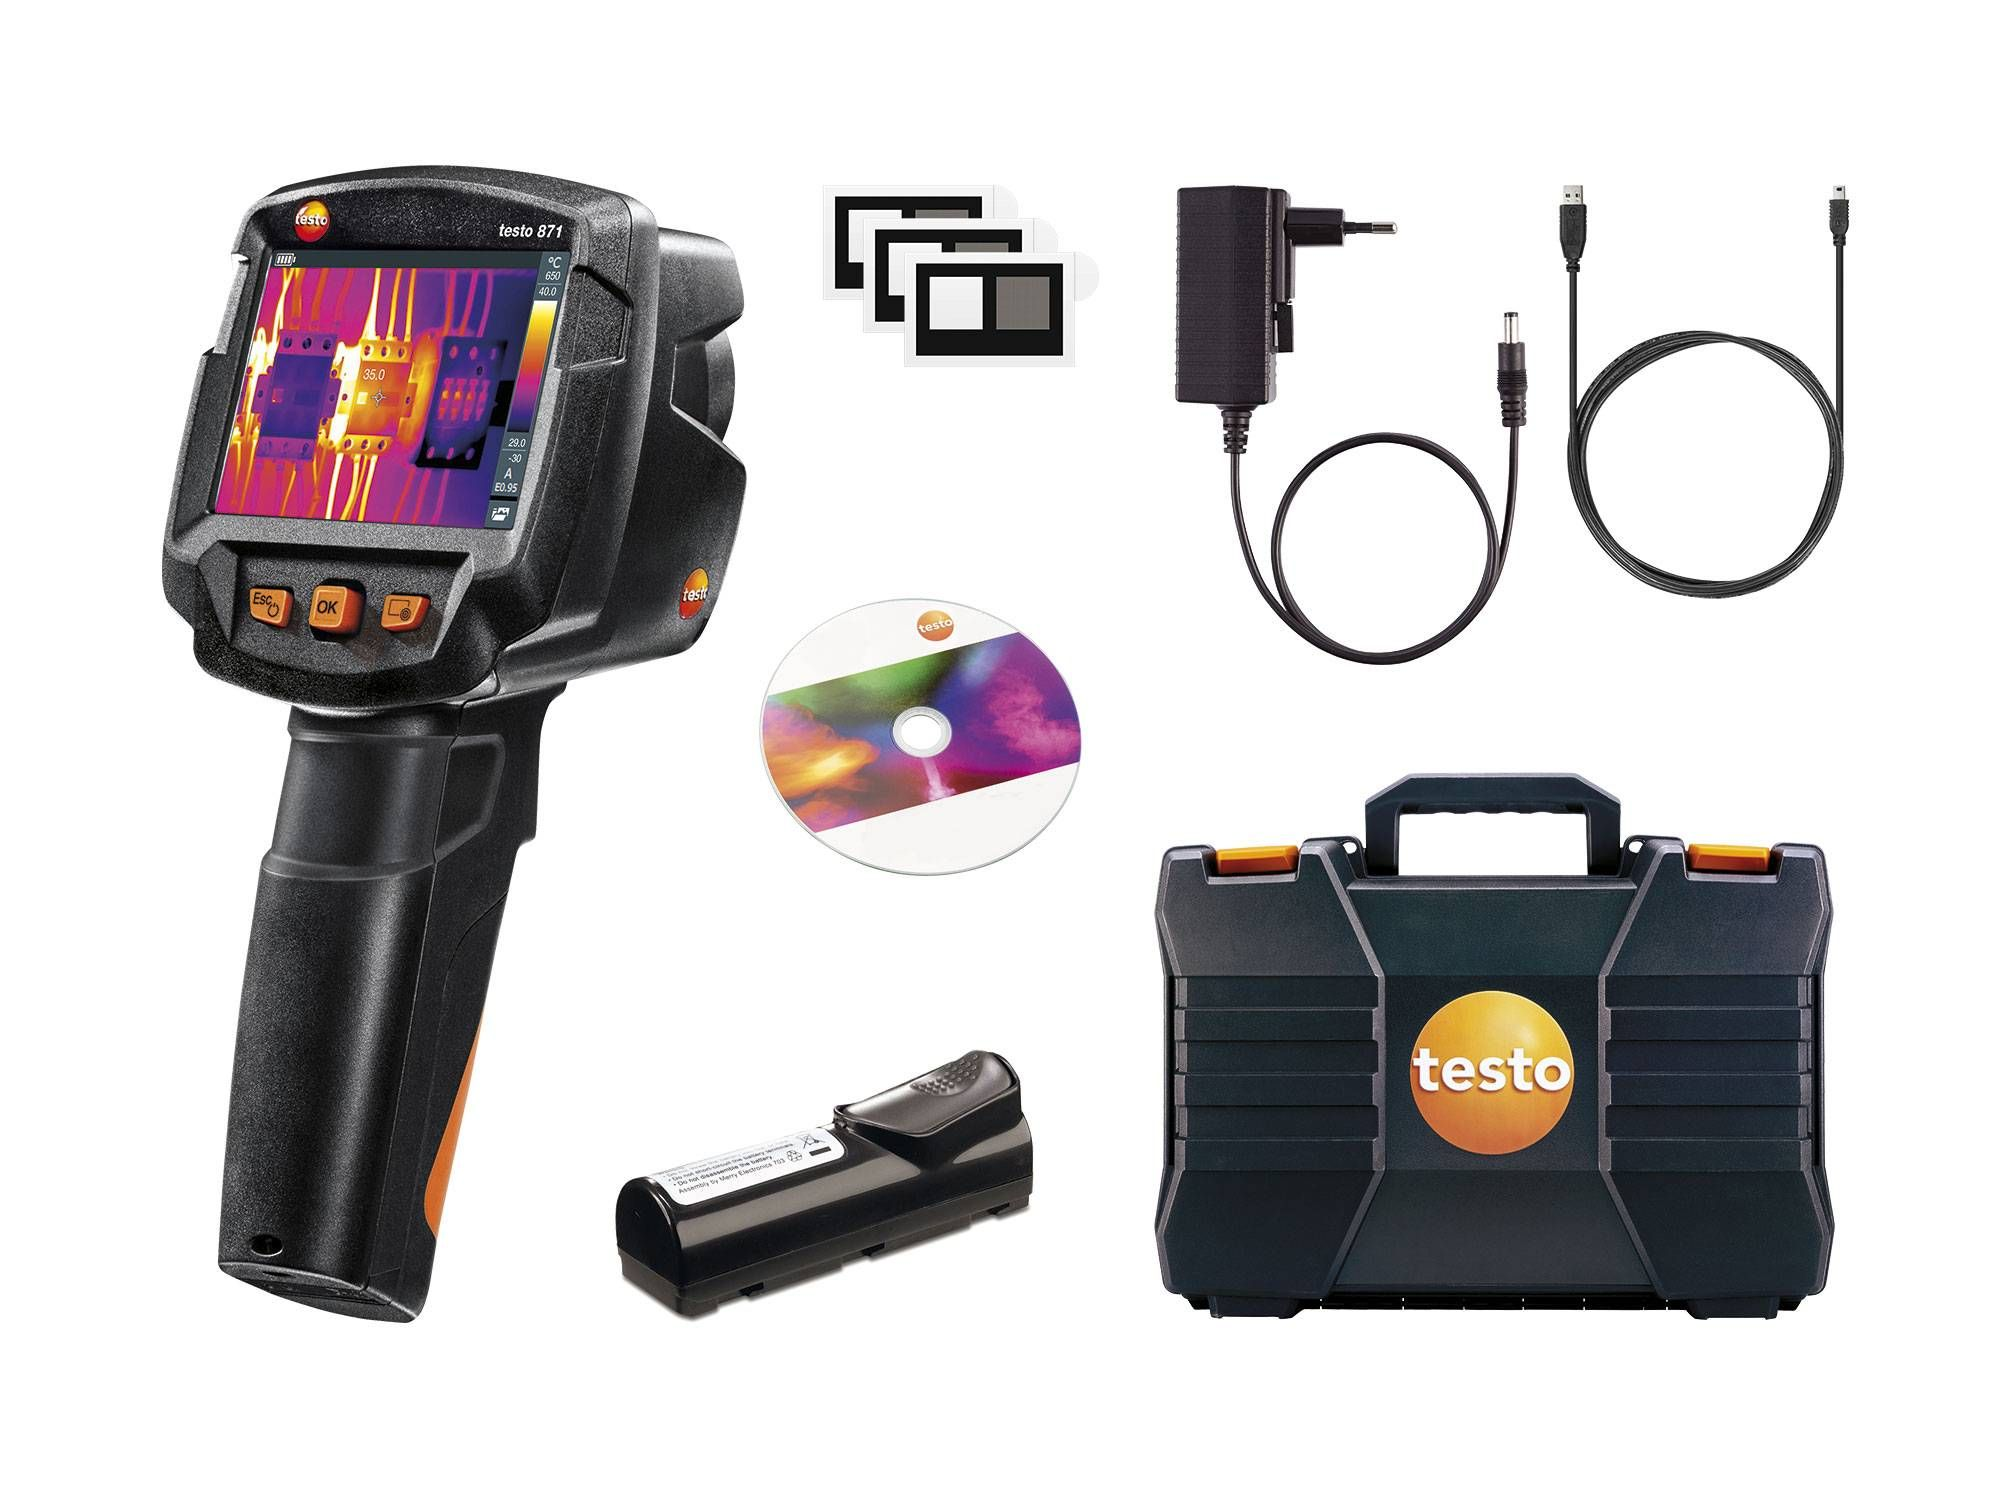 testo 871 - thermal imager with App - Delivery scope